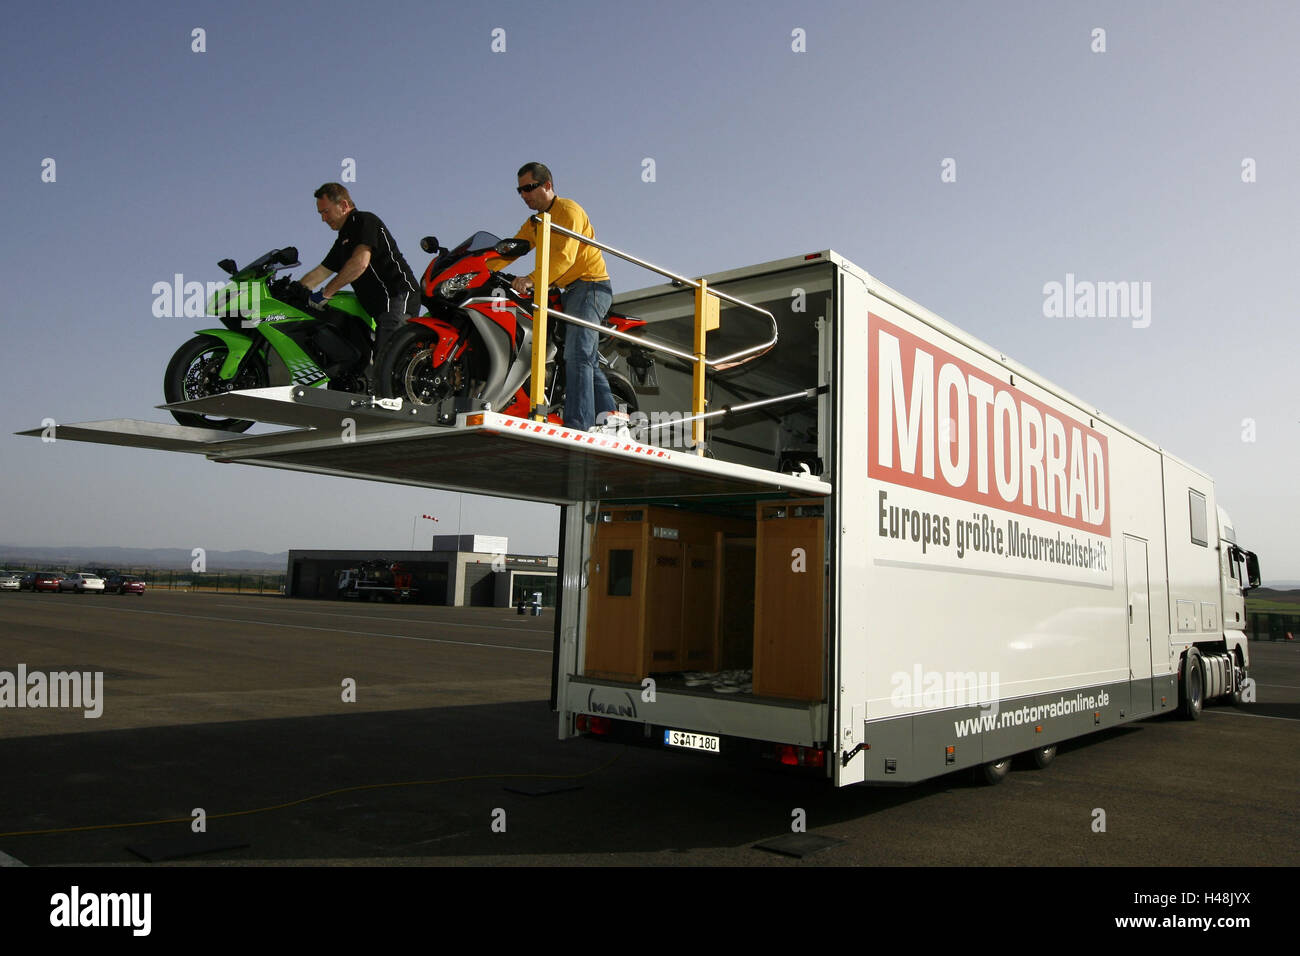 Motorcycle transport, truck, motorcycles, unloading, - Stock Image